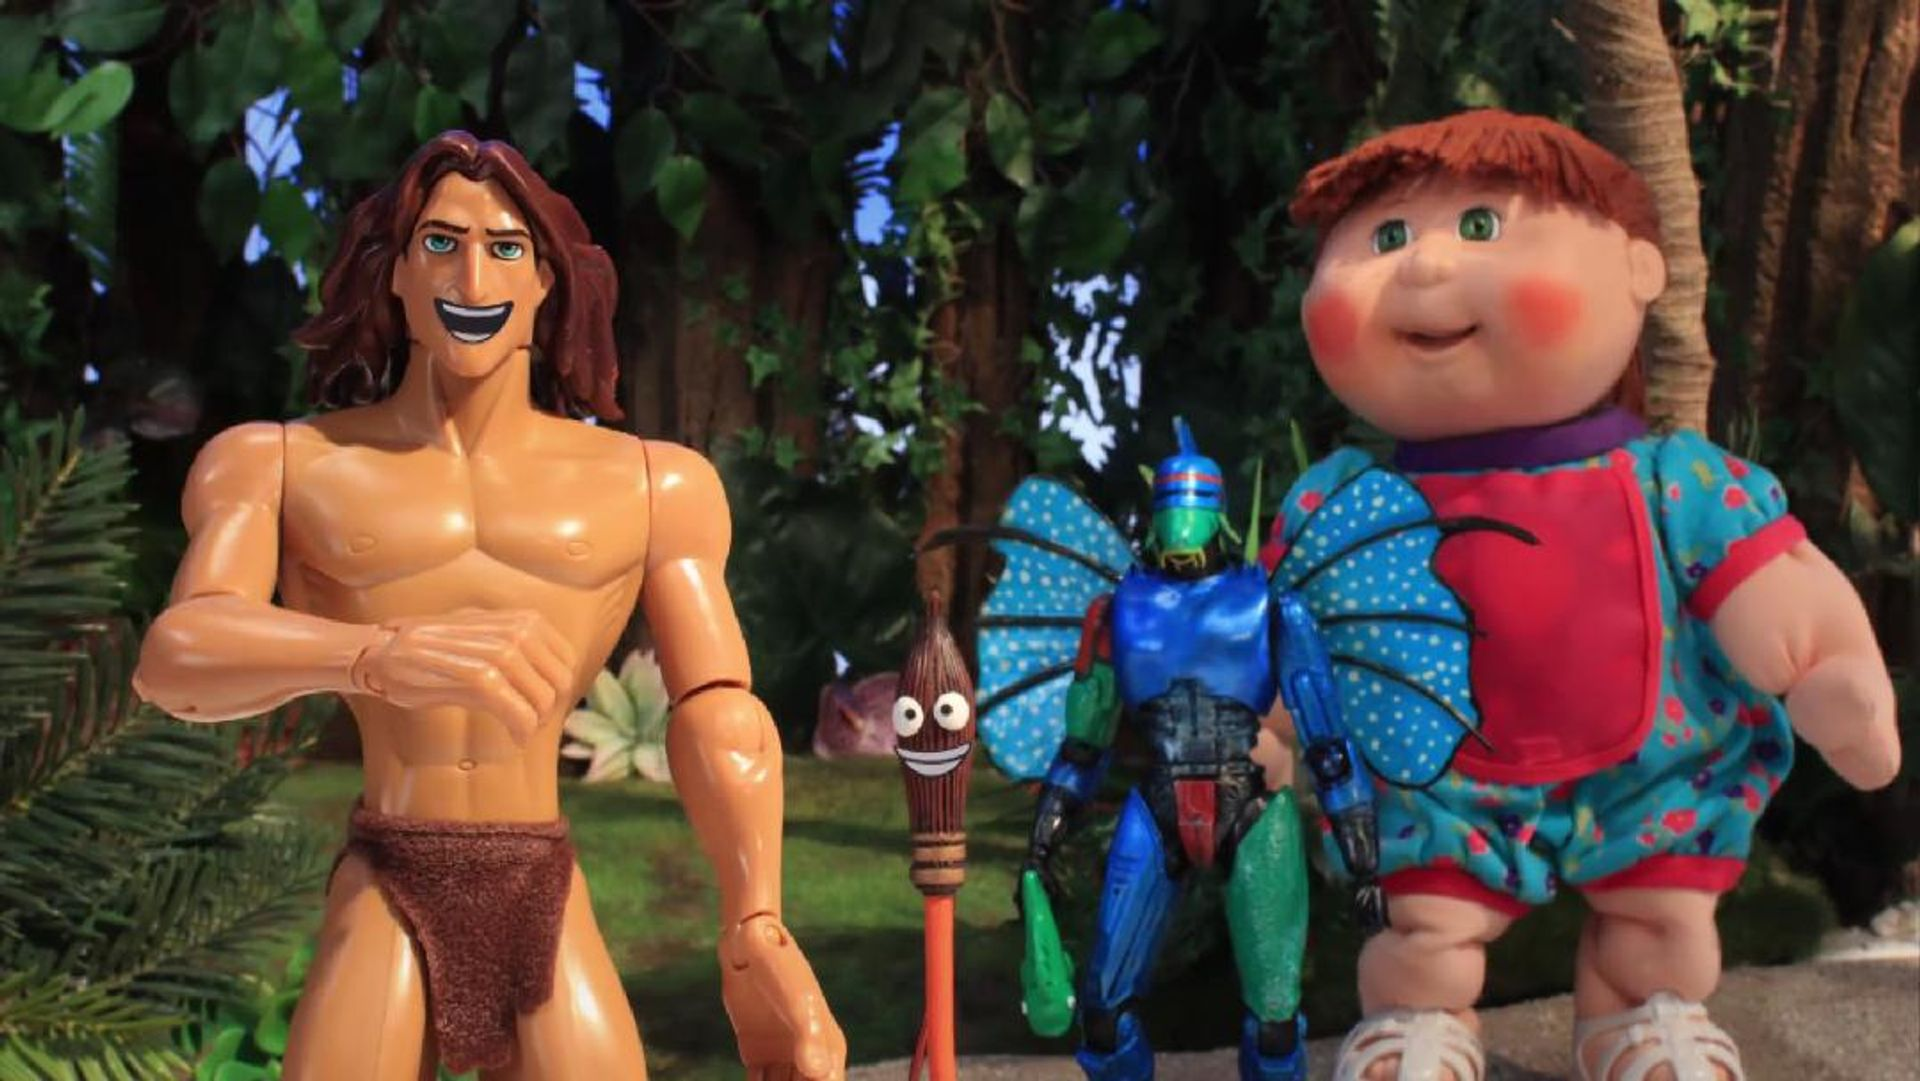 Watch Robot Chicken Episodes and Clips for Free from Adult Swim